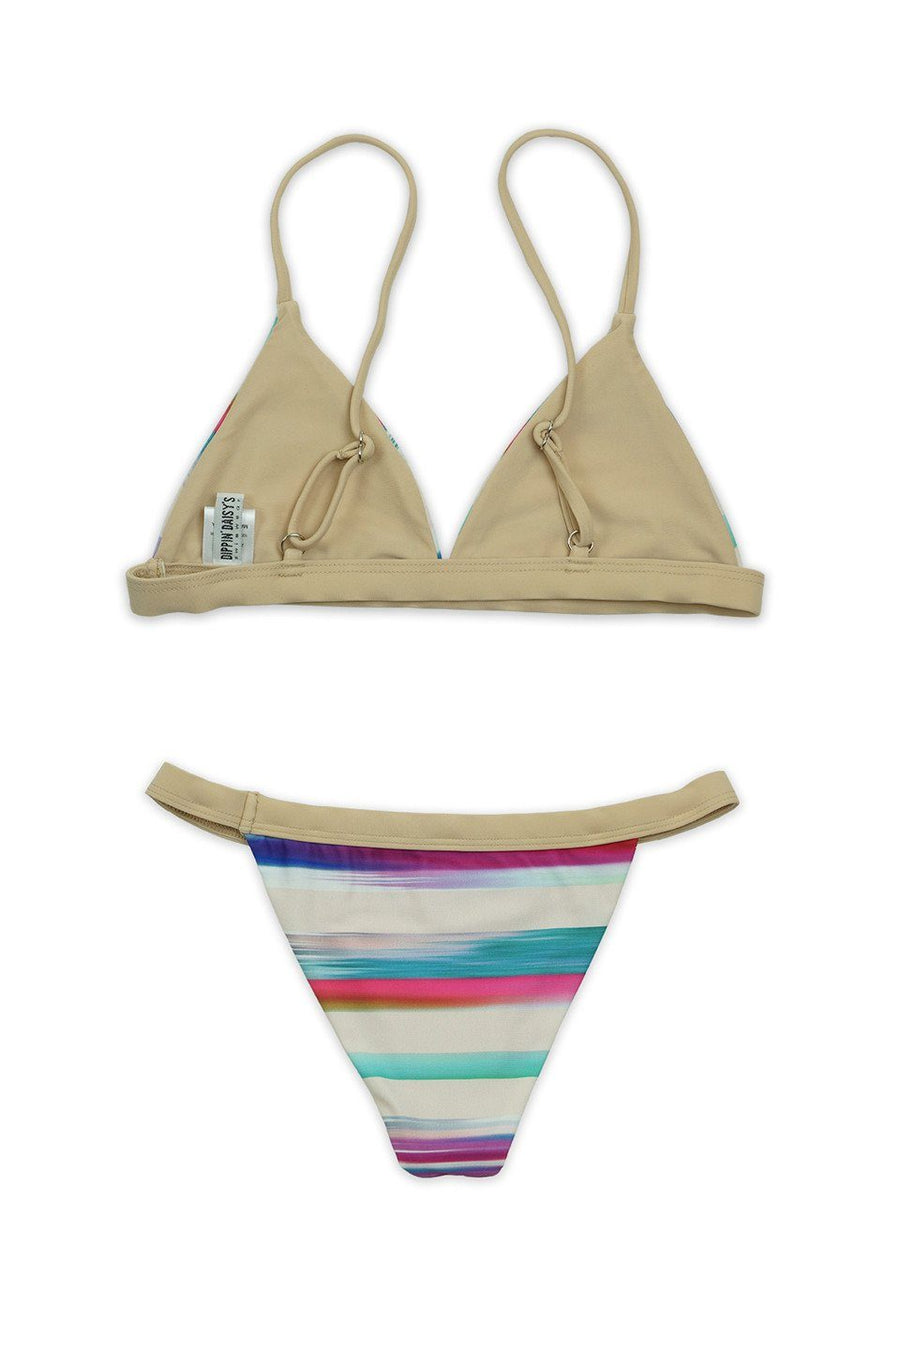 Tan Stripe Two-Piece Over-the-Shoulder Triangle Top with Banded Bottom - Front - Dippin' Daisy's Swimwear